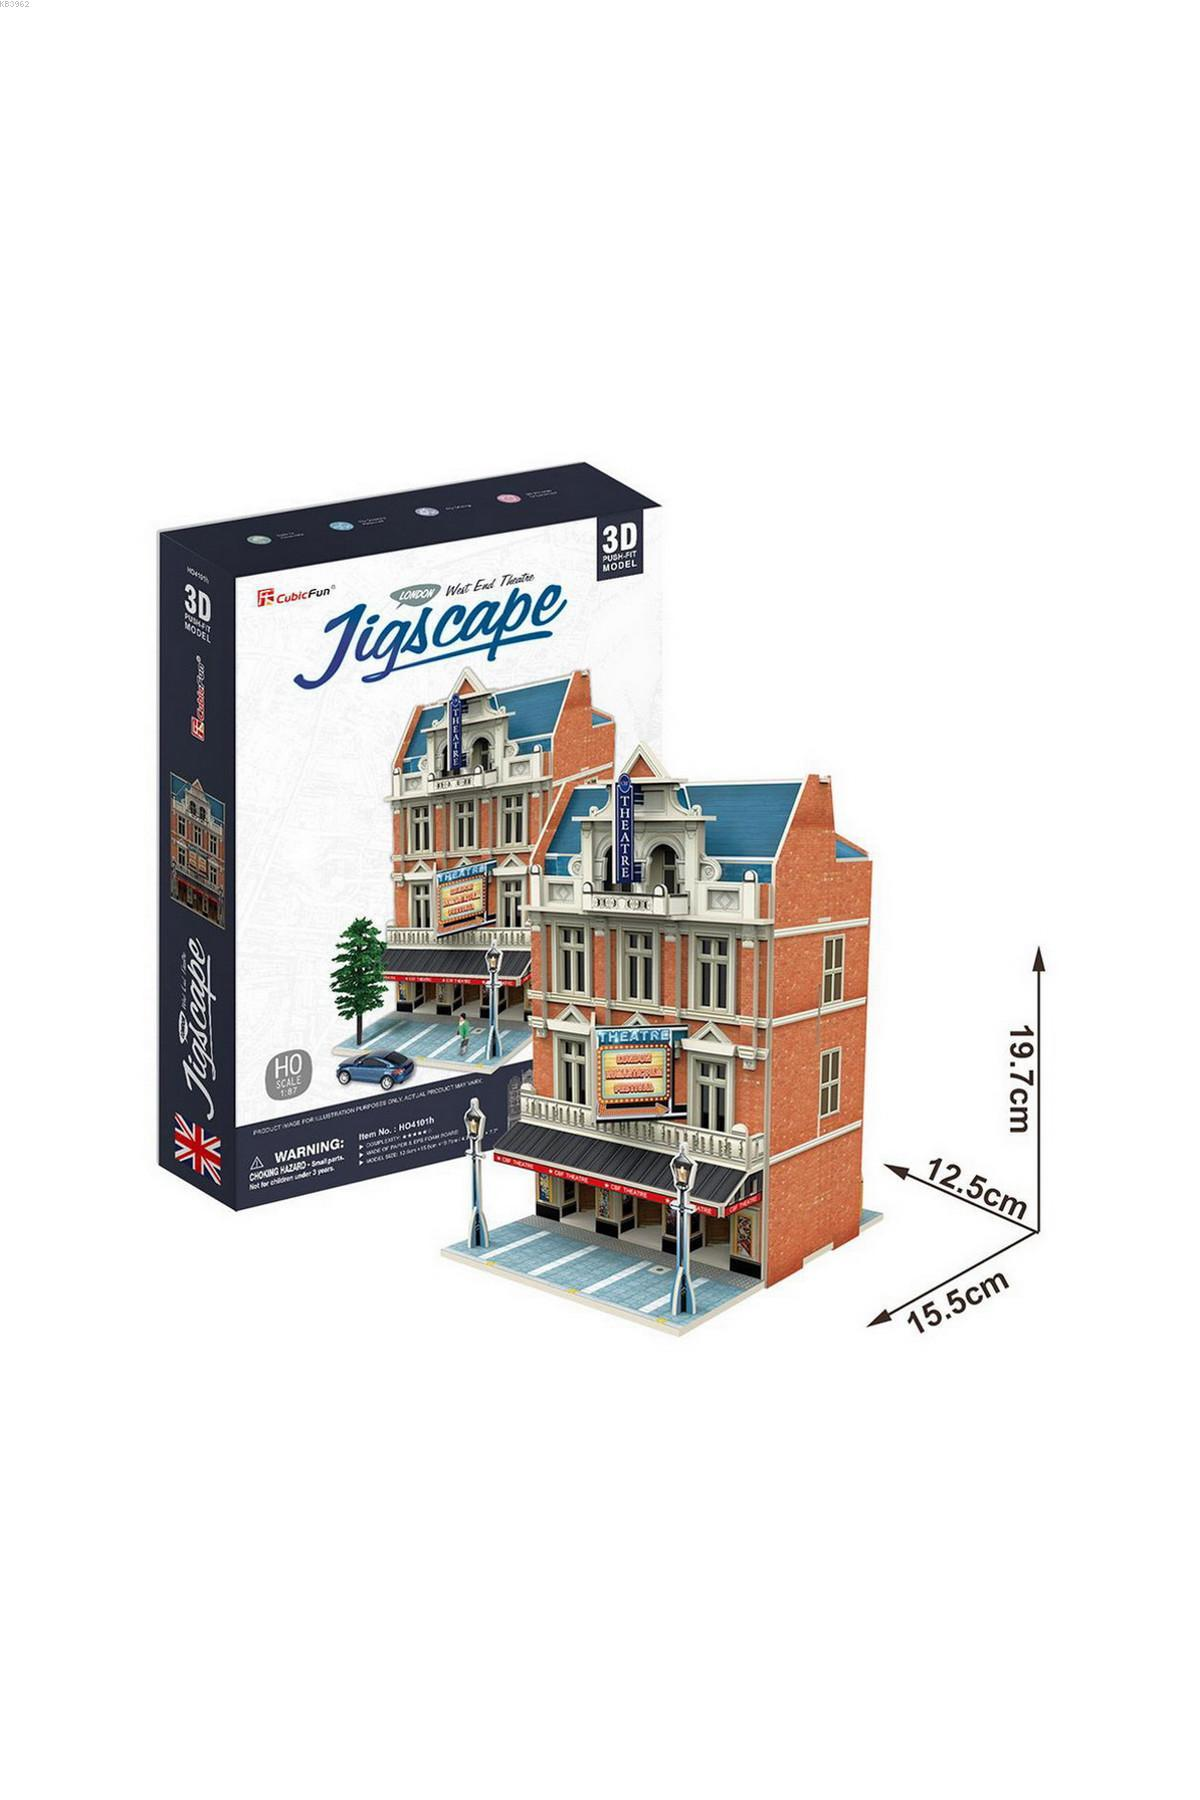 NecoToys HO4101h London JigScape 3D Puzzle